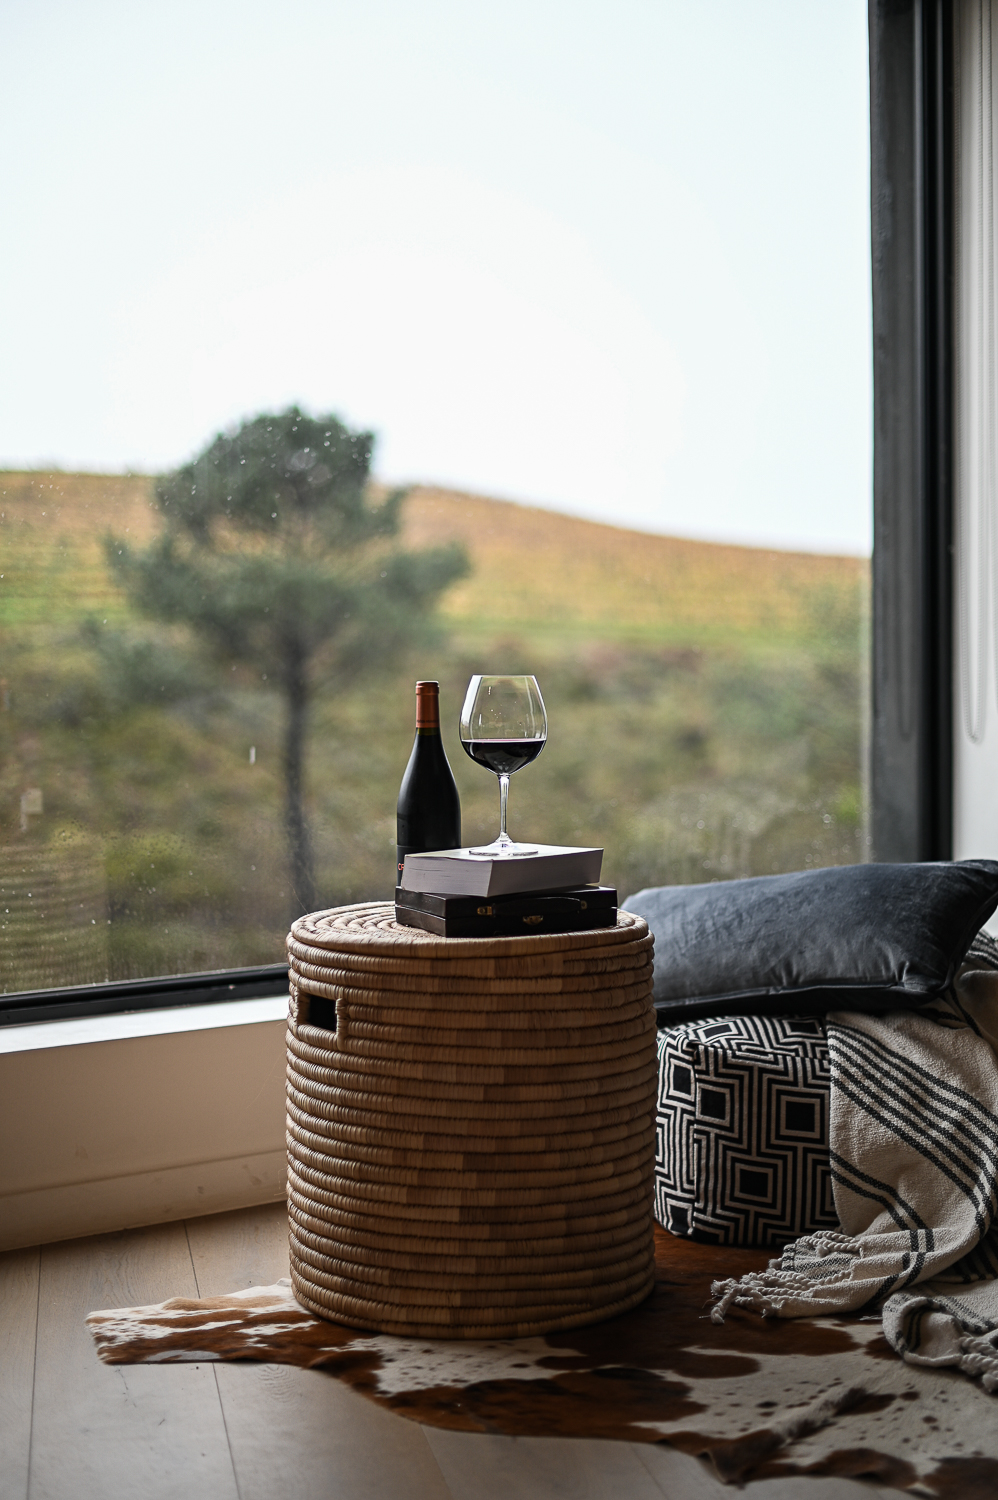 FROM WAVES TO WINE – EXPLORING AN OFF-SEASON OVERSTRAND